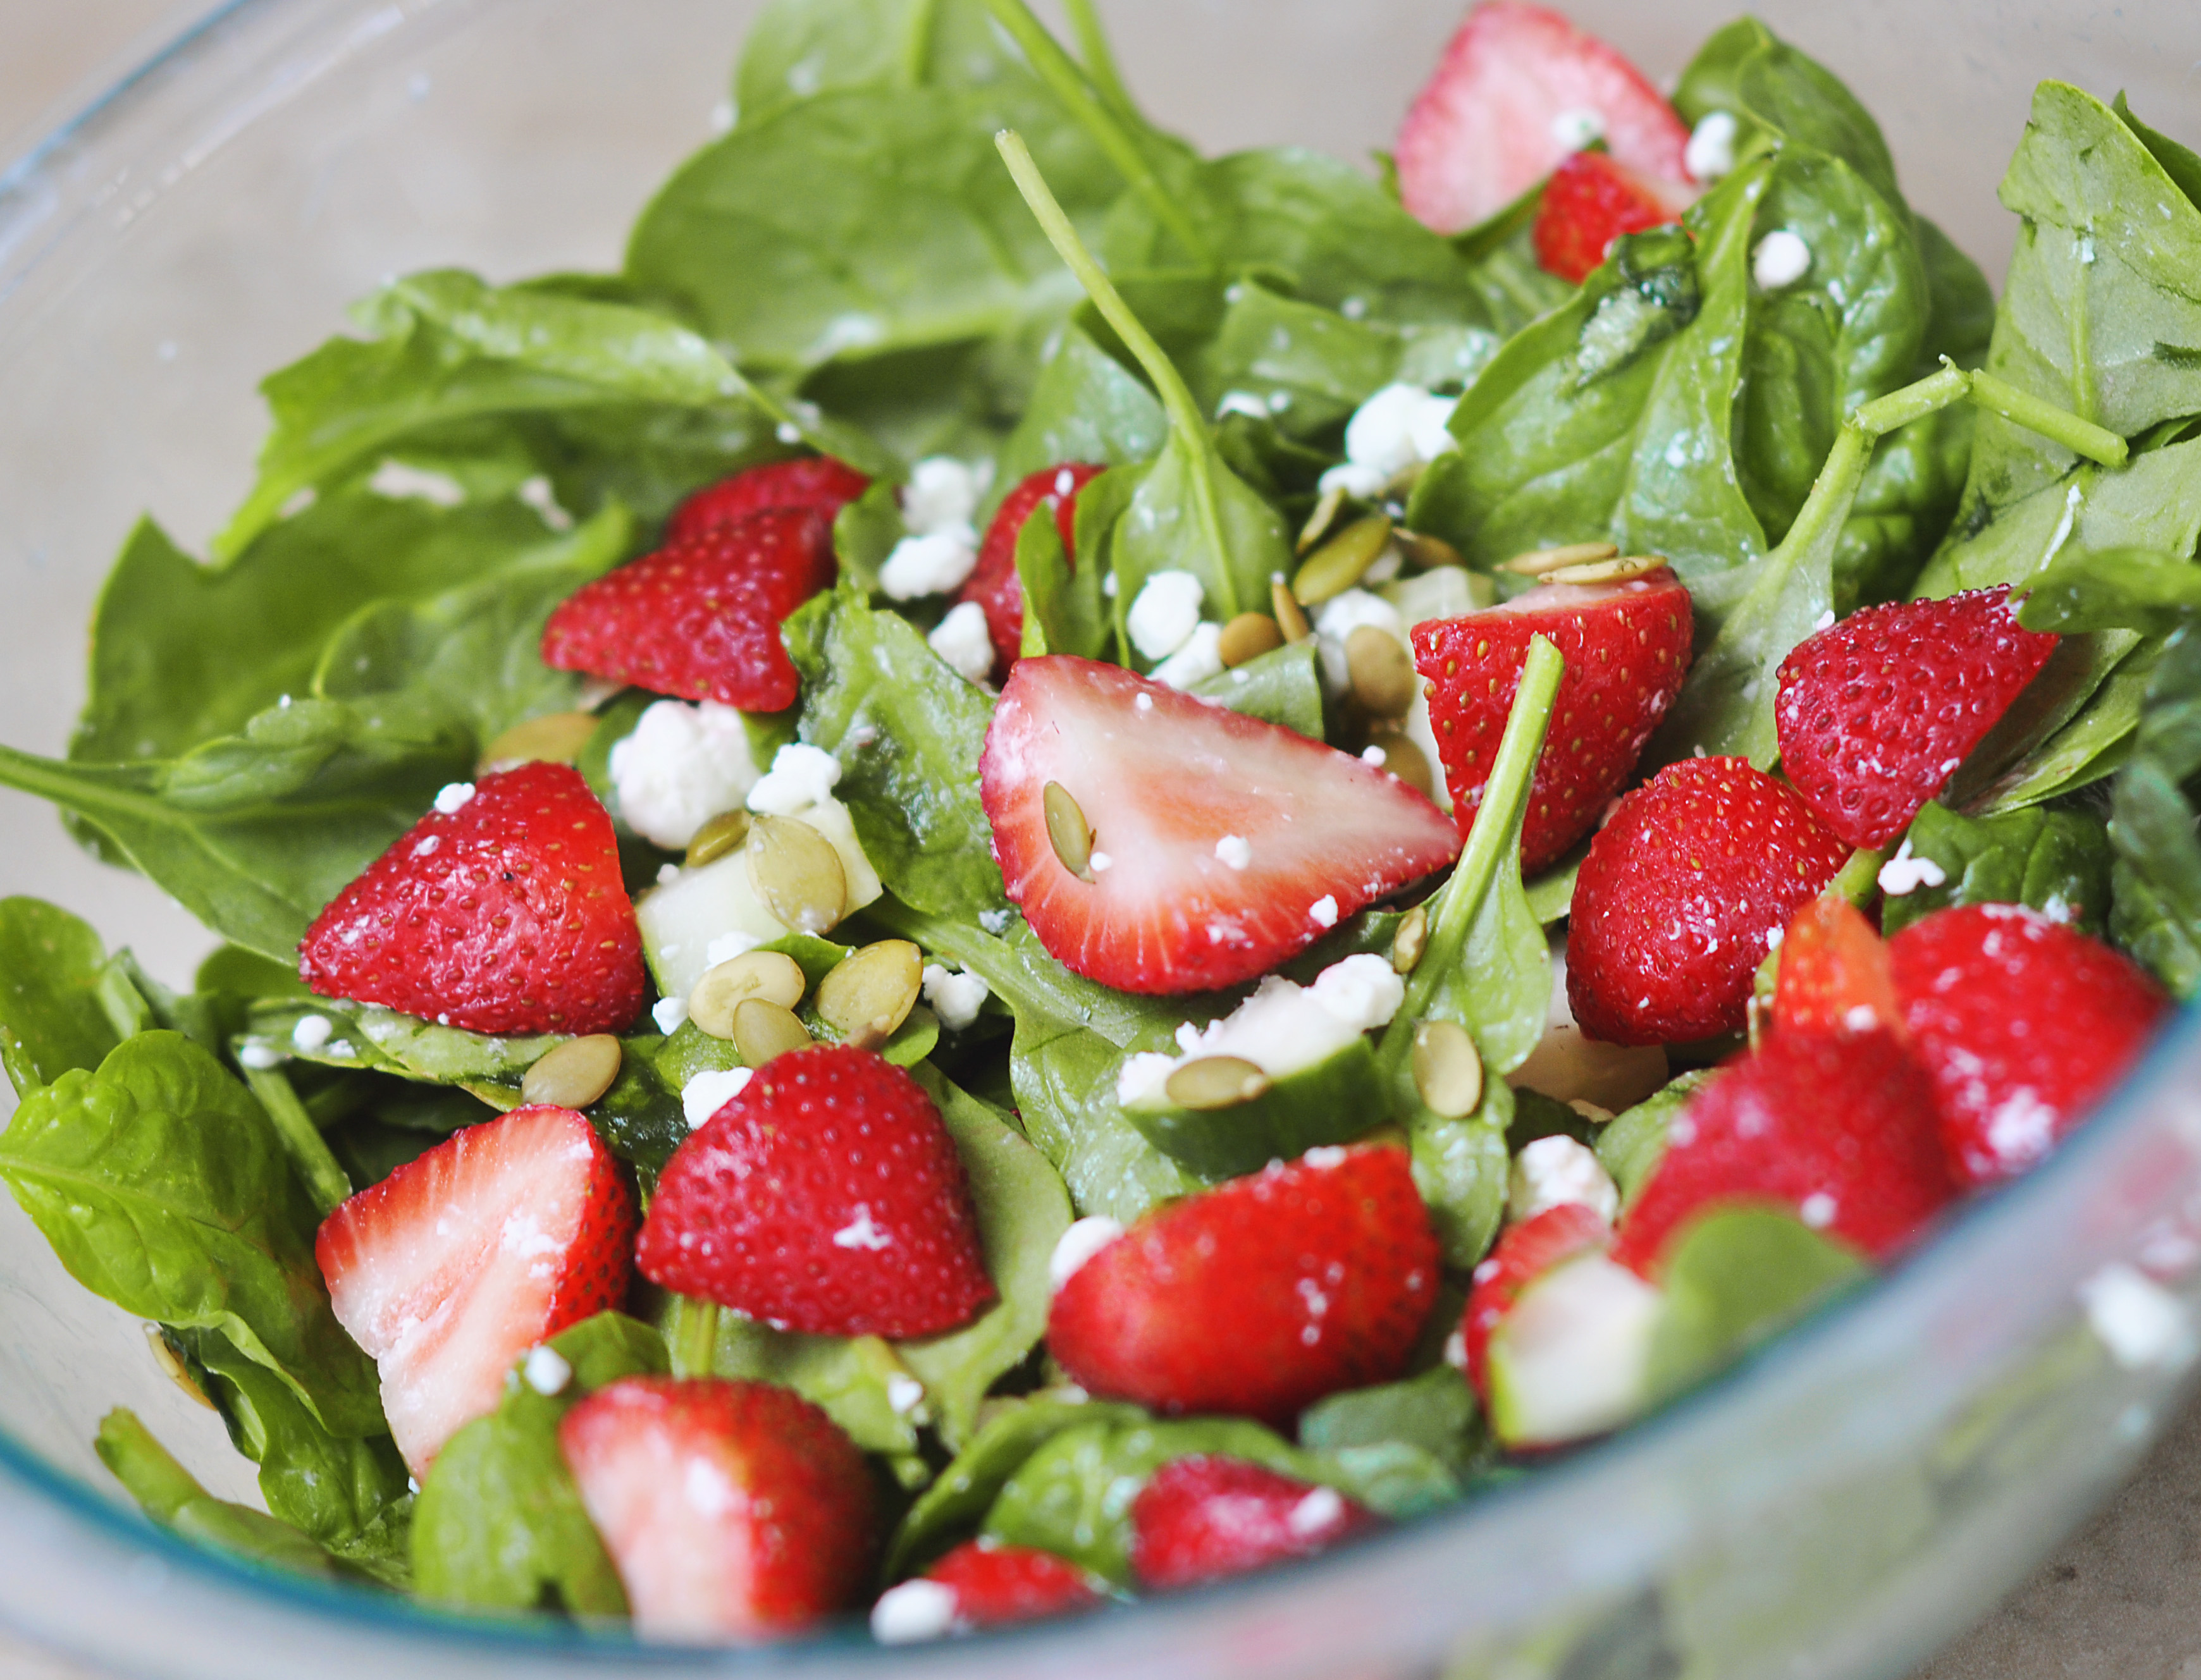 Healthy Food Recipes For Lunch And Dinner